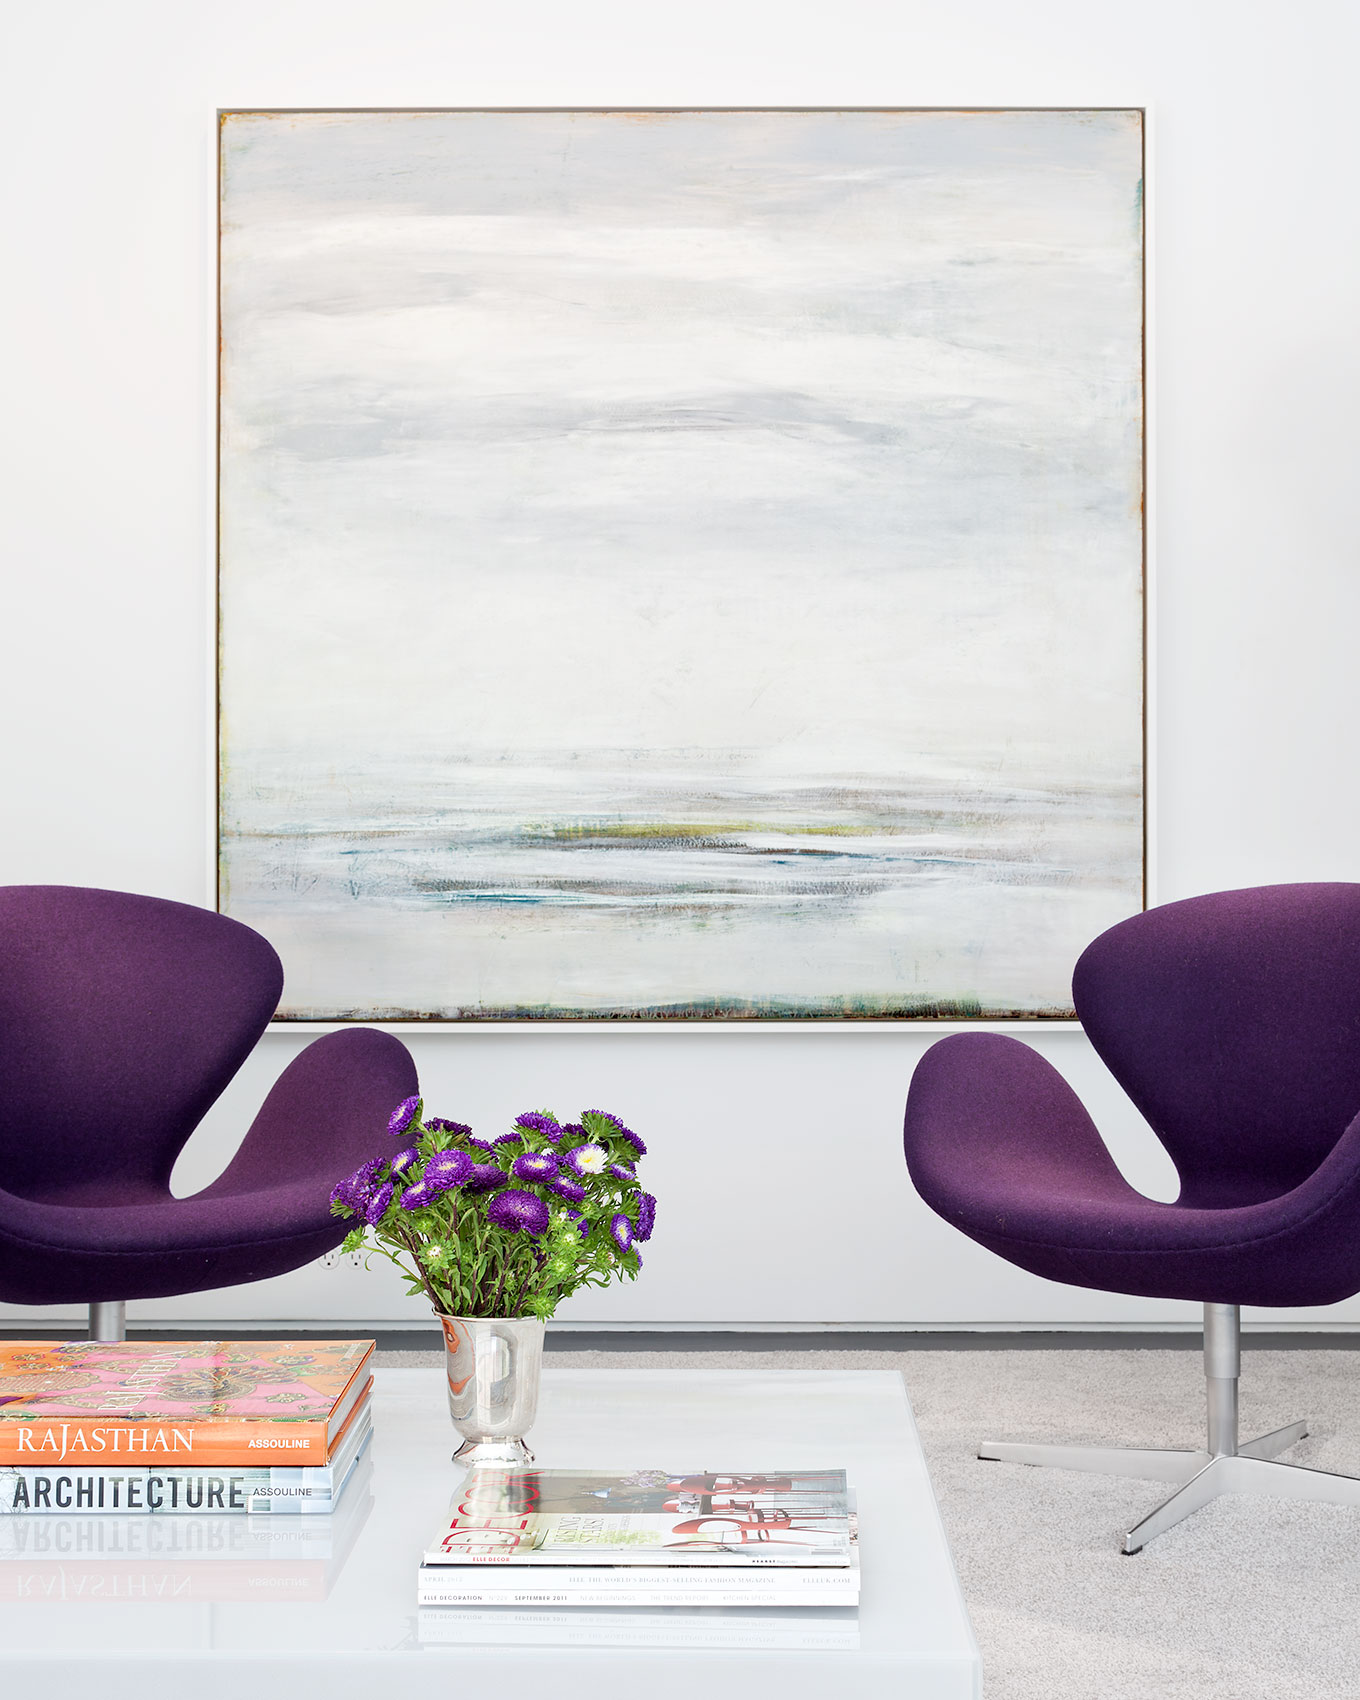 Knoll Chairs, Interior Design, Manhattan, New York